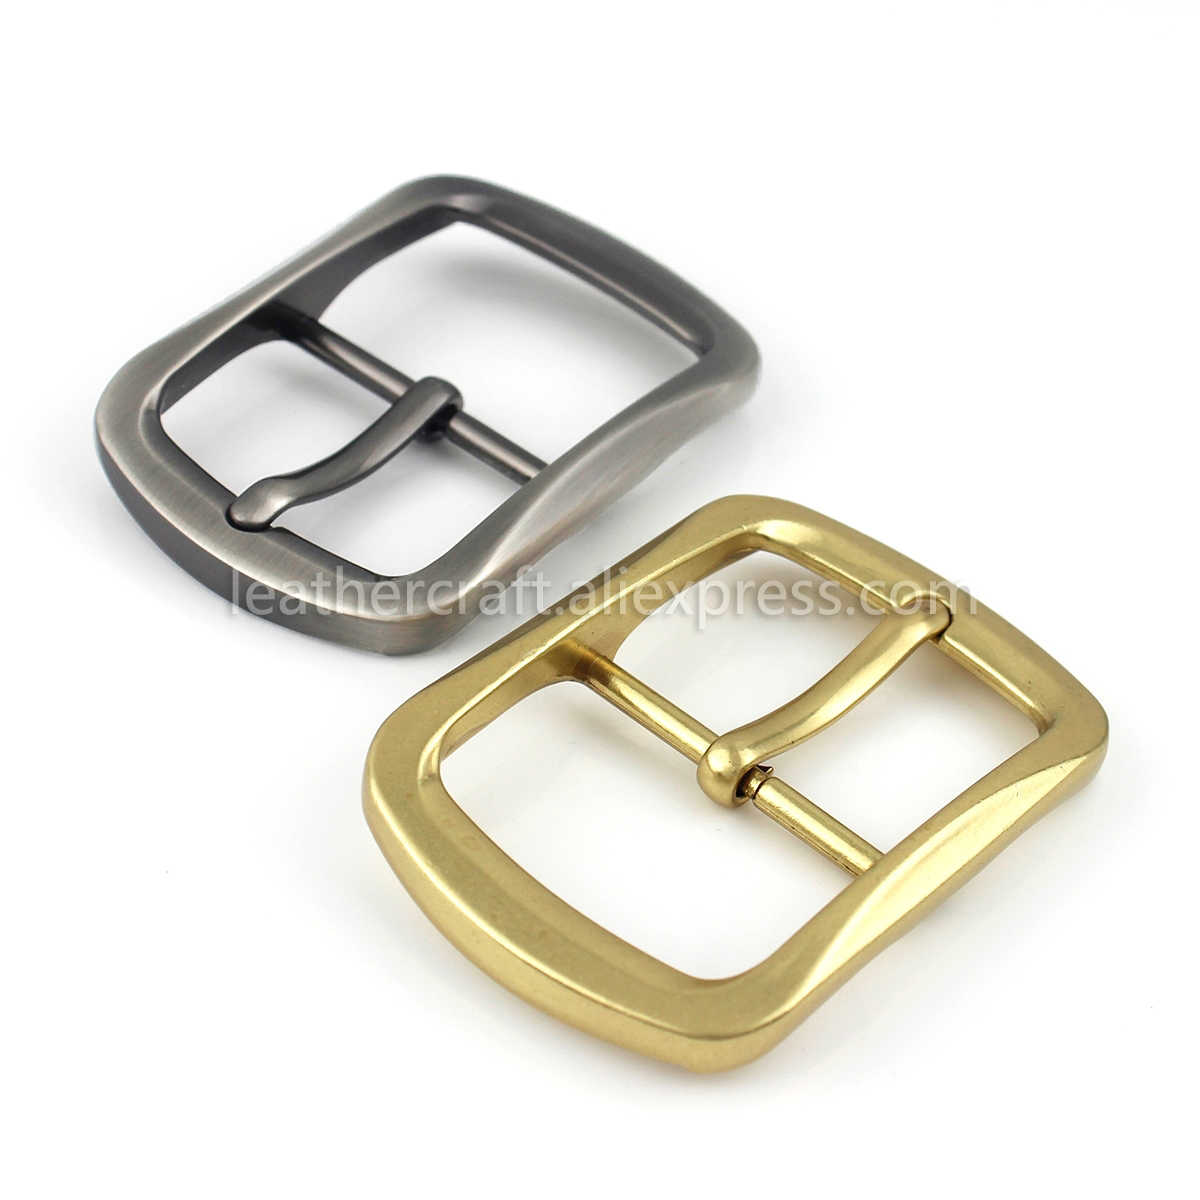 1x 30 mm Metal Belt Buckle Fashion Casual Strap buckle Leather Craft Decor parts